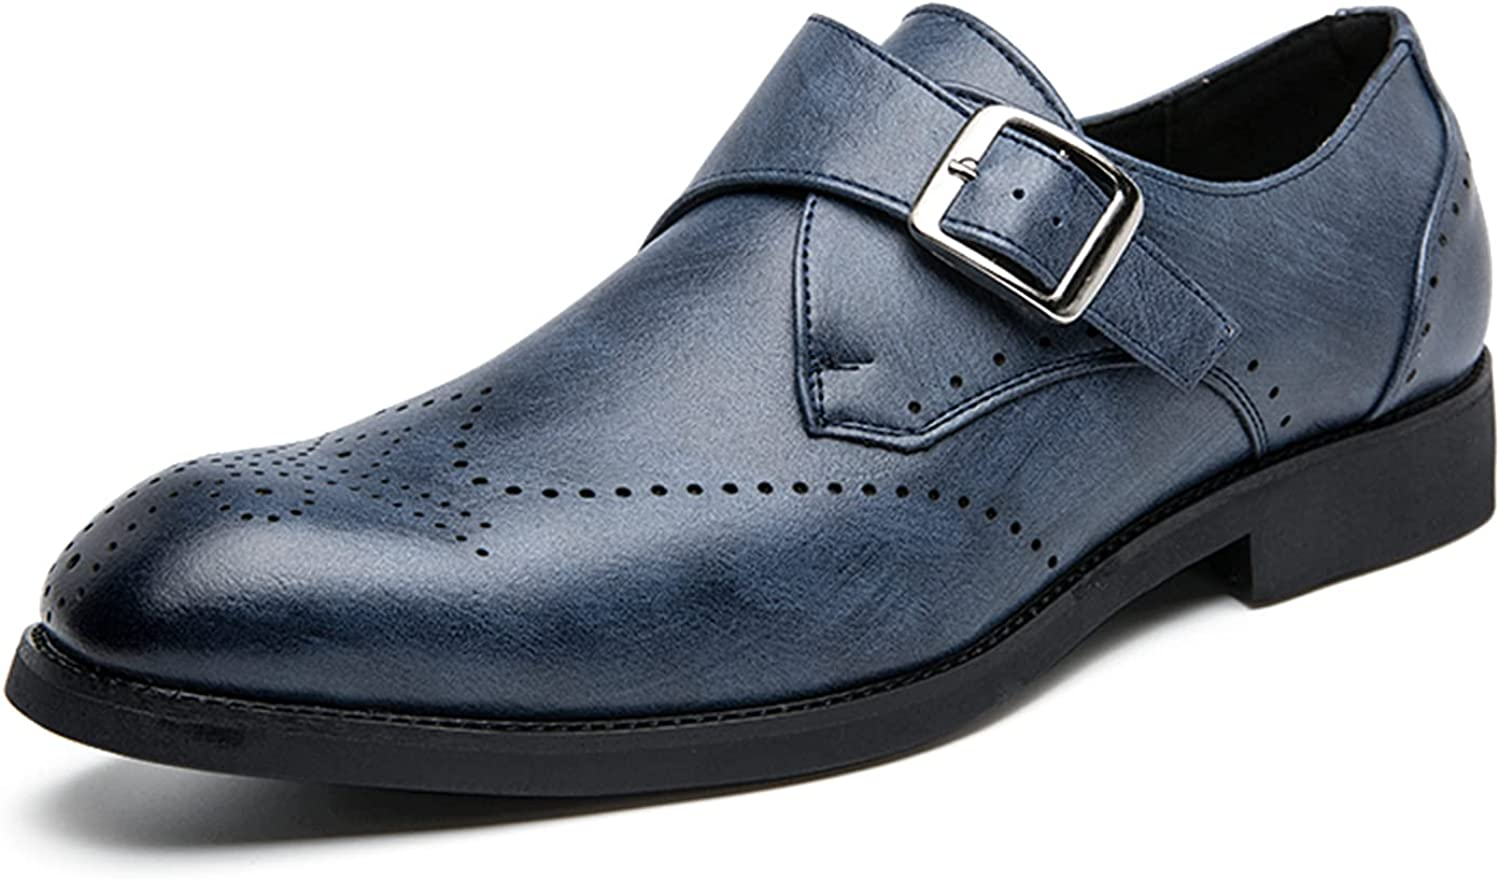 Zhousensen Men's Oxford Leather Shoes Business Leather Shoes Breathable Wedding Dress Casual Shoes